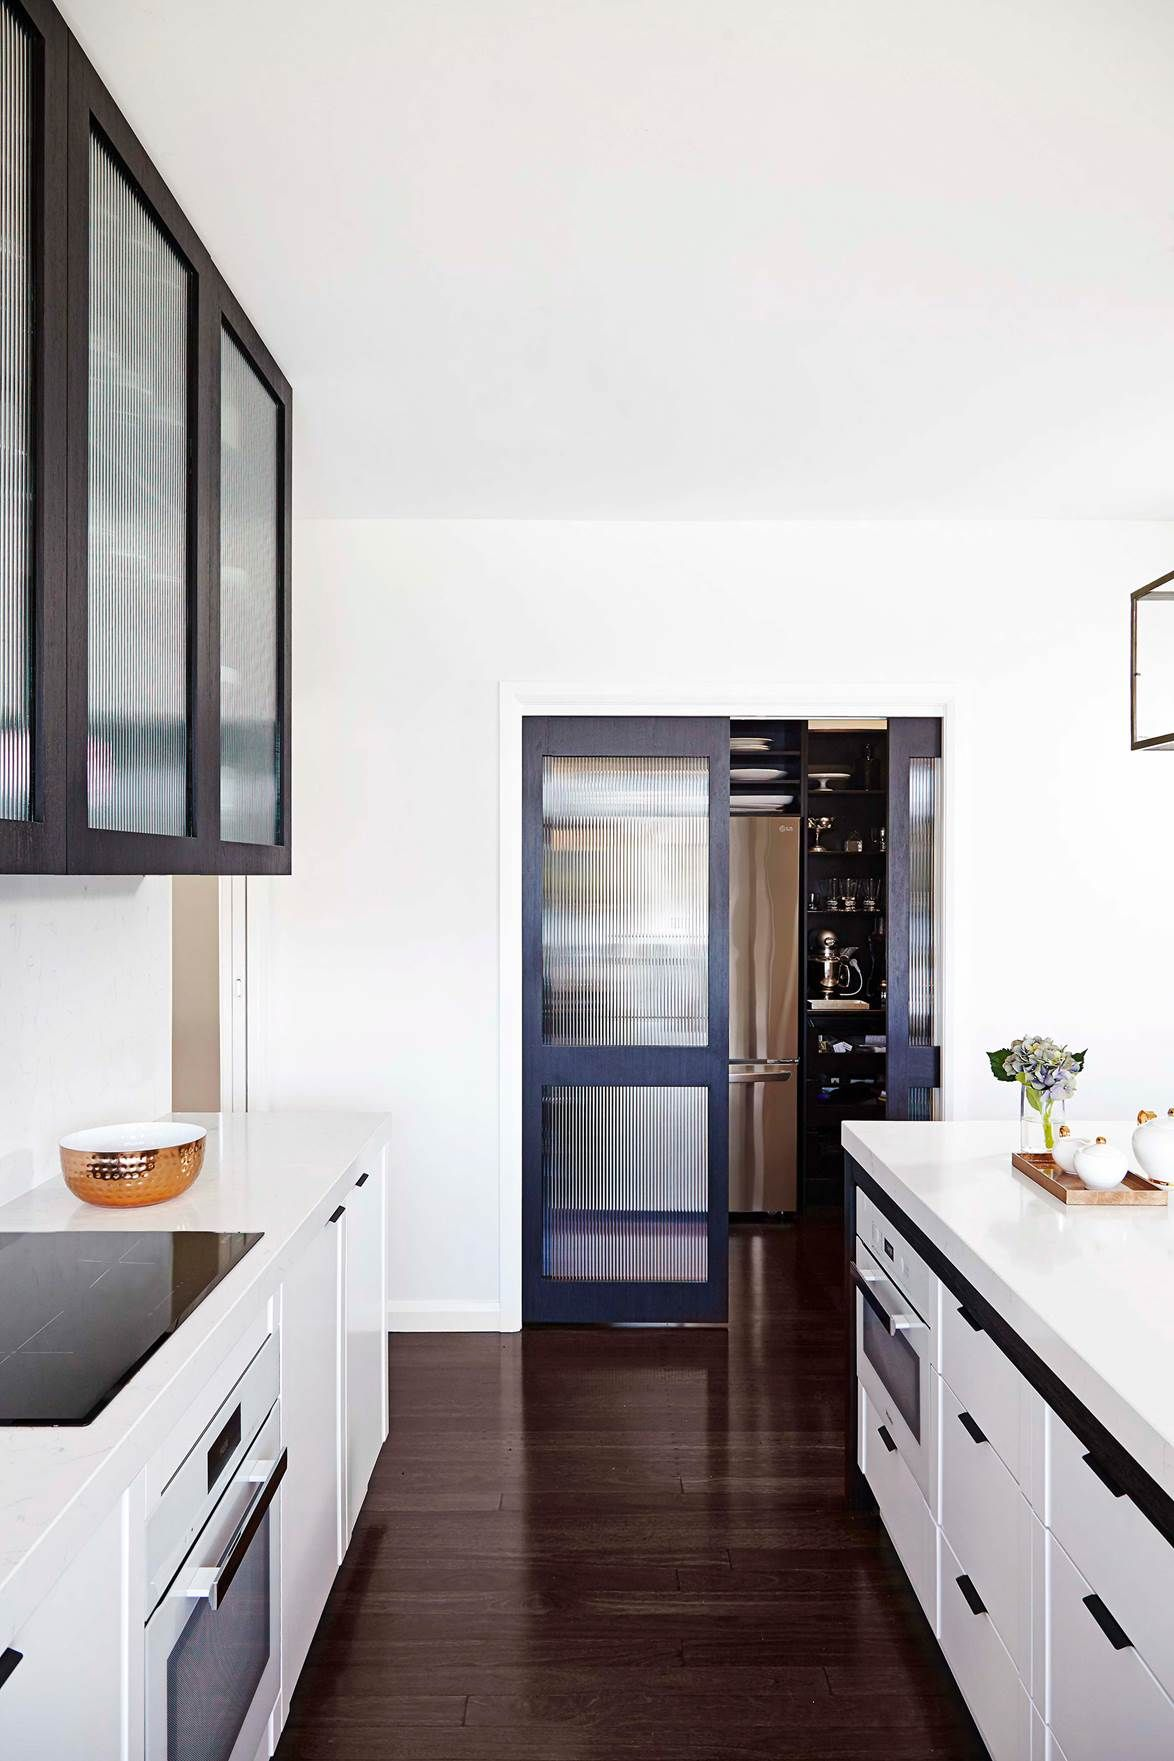 fluted glass is the latest interior design trend pantry on modern kitchen design that will inspire your luxury interior essential elements id=25457